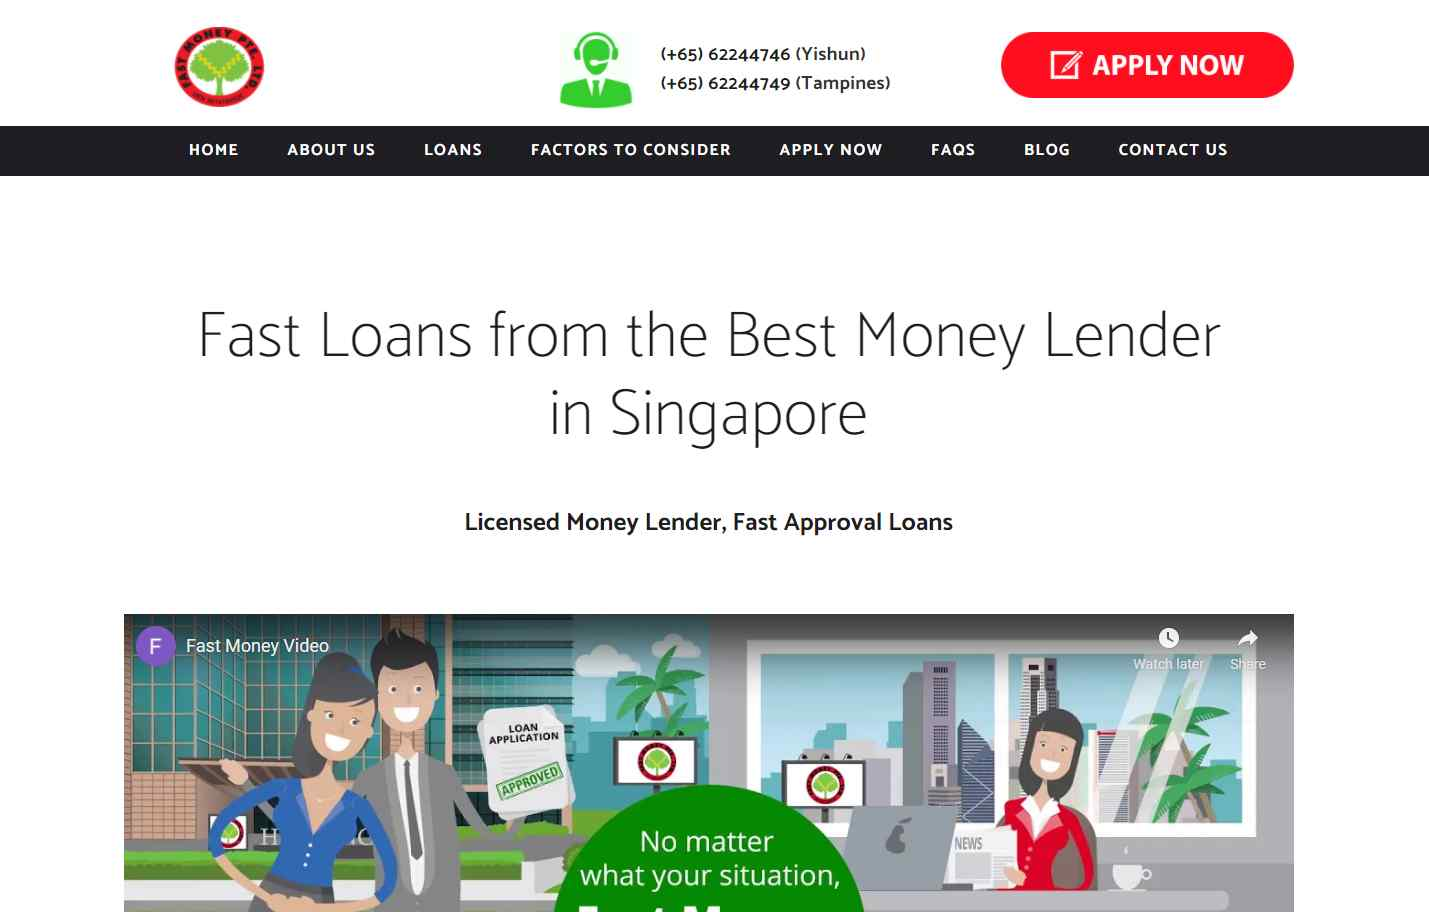 fast money Top Money Lenders In Singapore